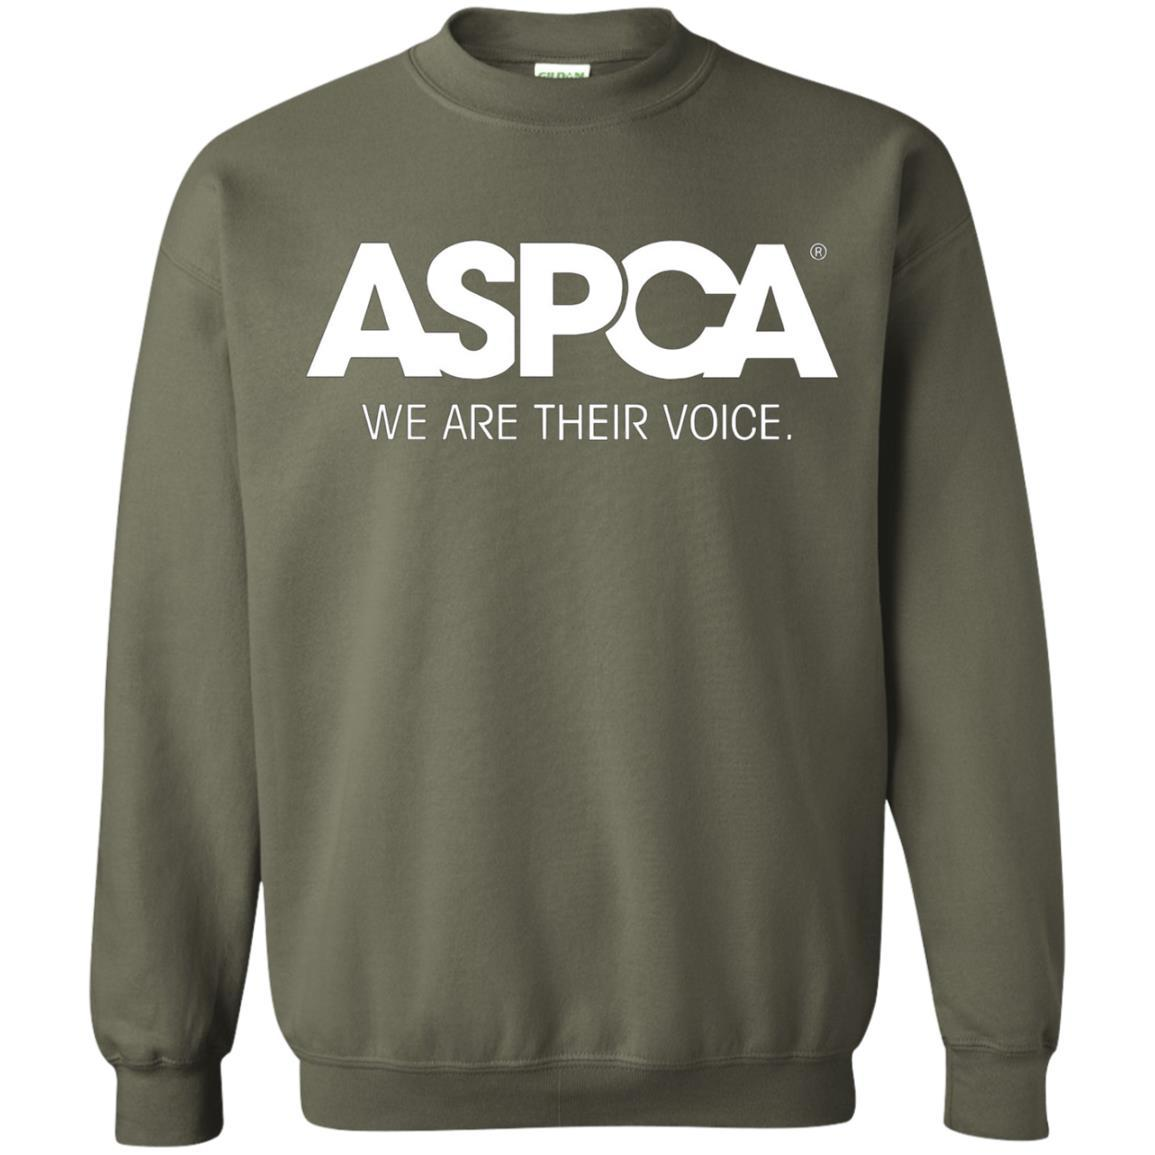 ASPCA Apparel - Crewneck Pullover Sweatshirt Military Green / 5XL